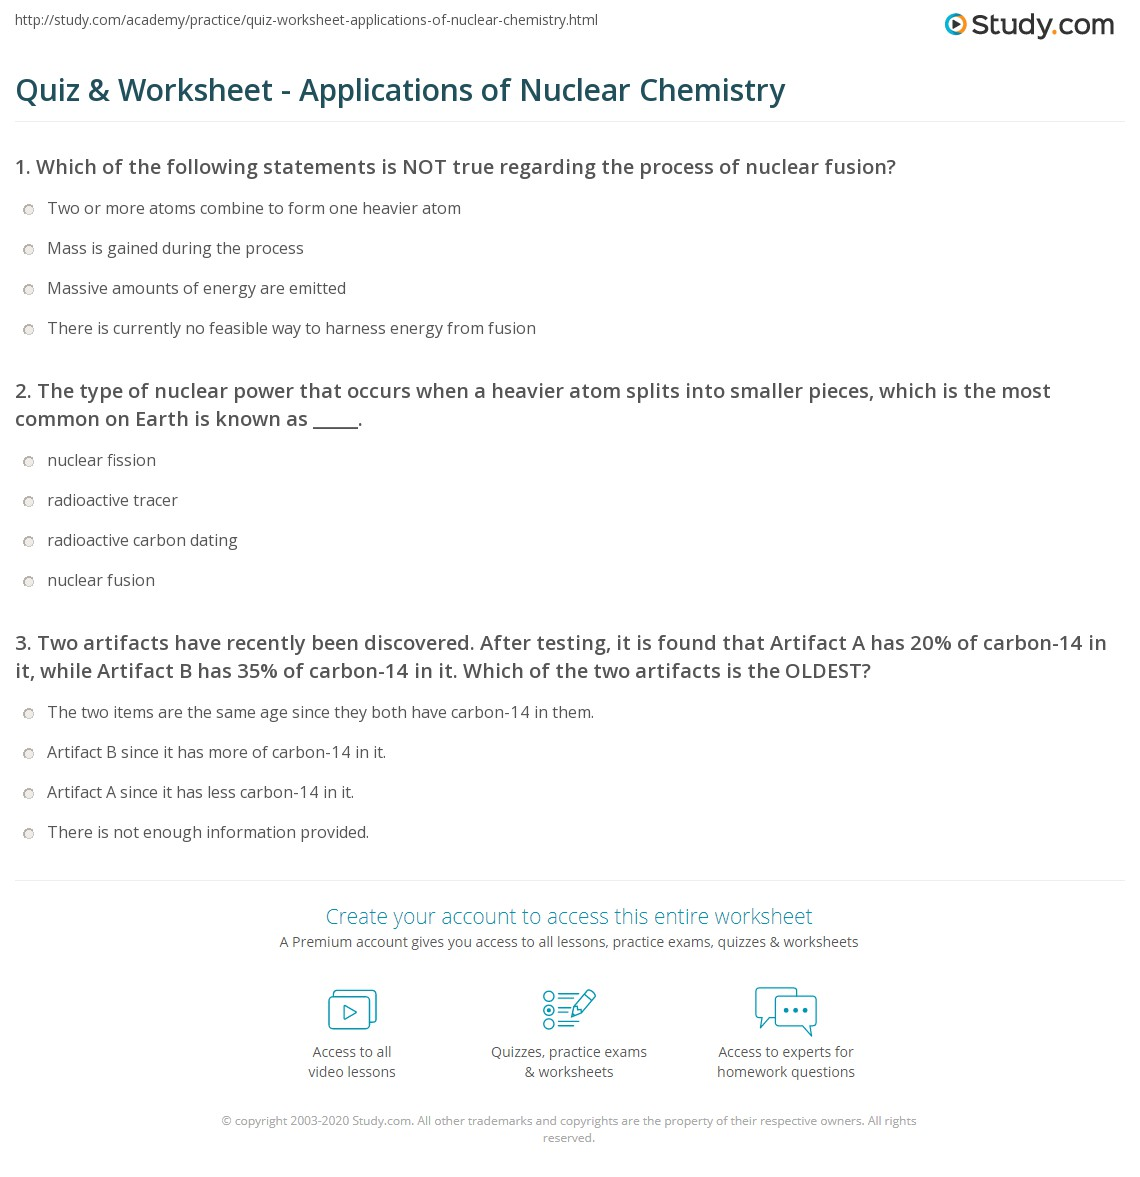 Quiz & Worksheet - Applications of Nuclear Chemistry | Study.com